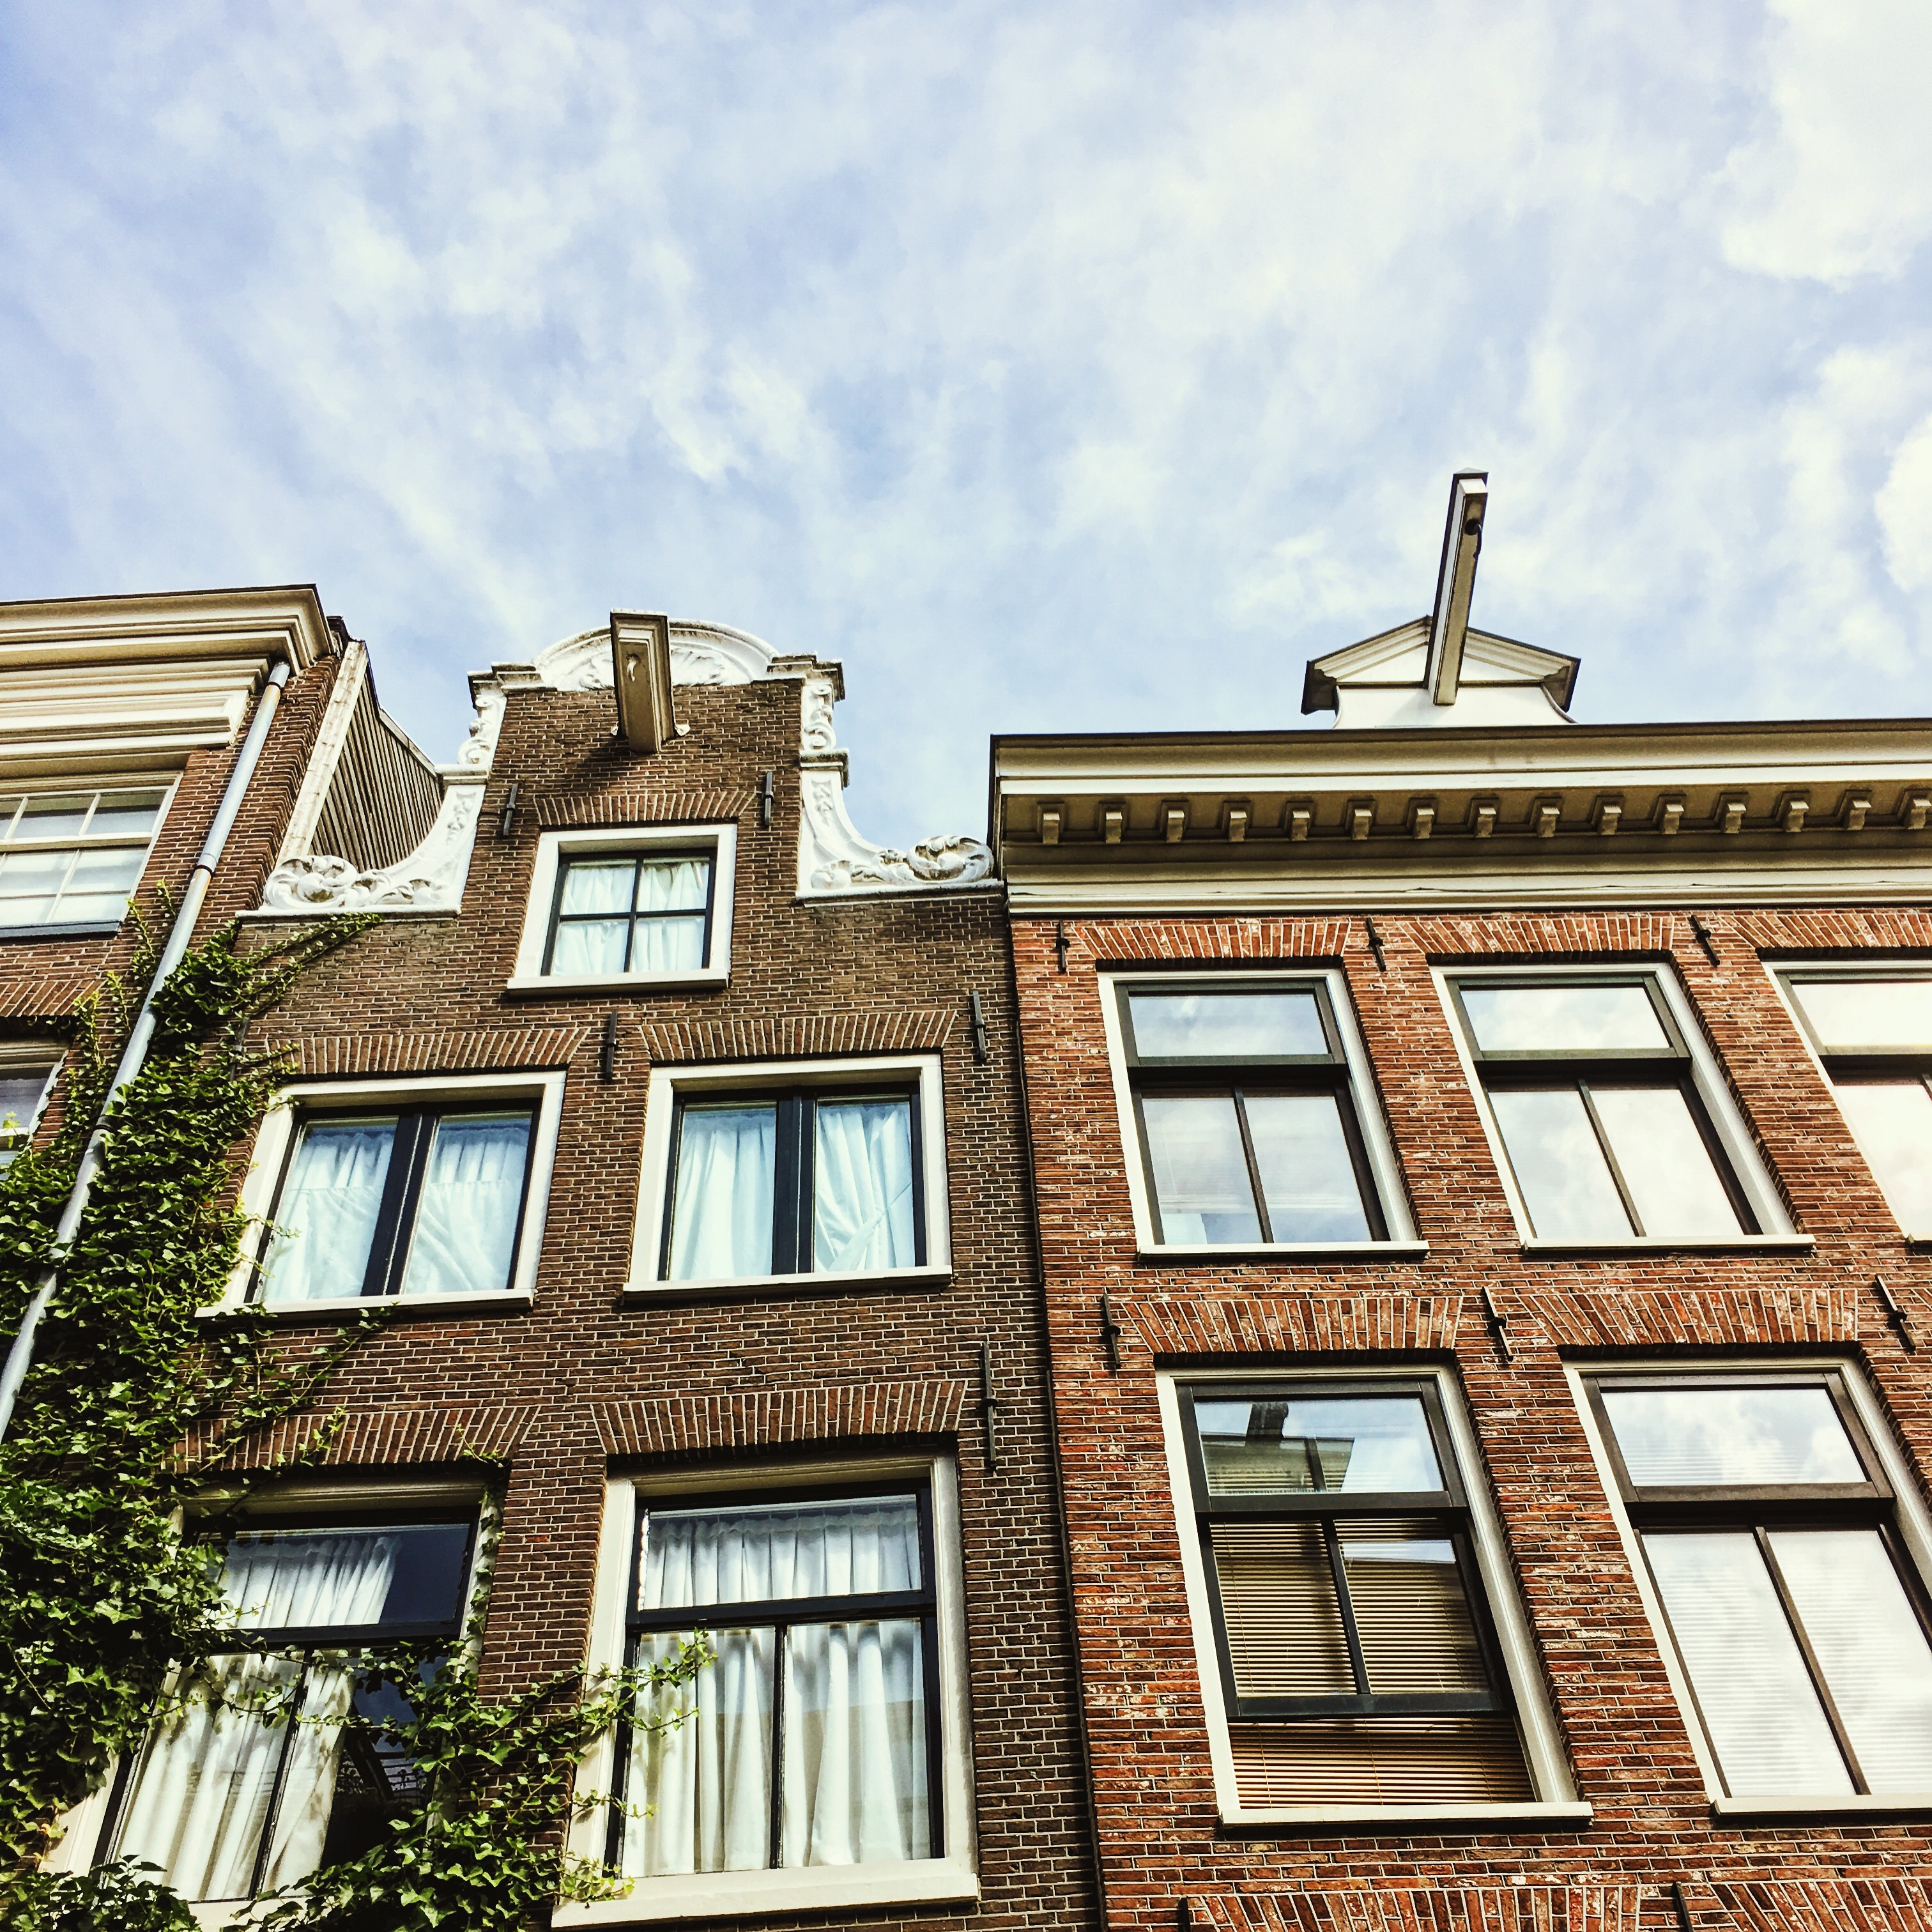 Moving to Amsterdam? Tips on how to find housing with rental apartments & room shares in the Netherlands. Includes expat advice, strategies, & neighborhood advice.